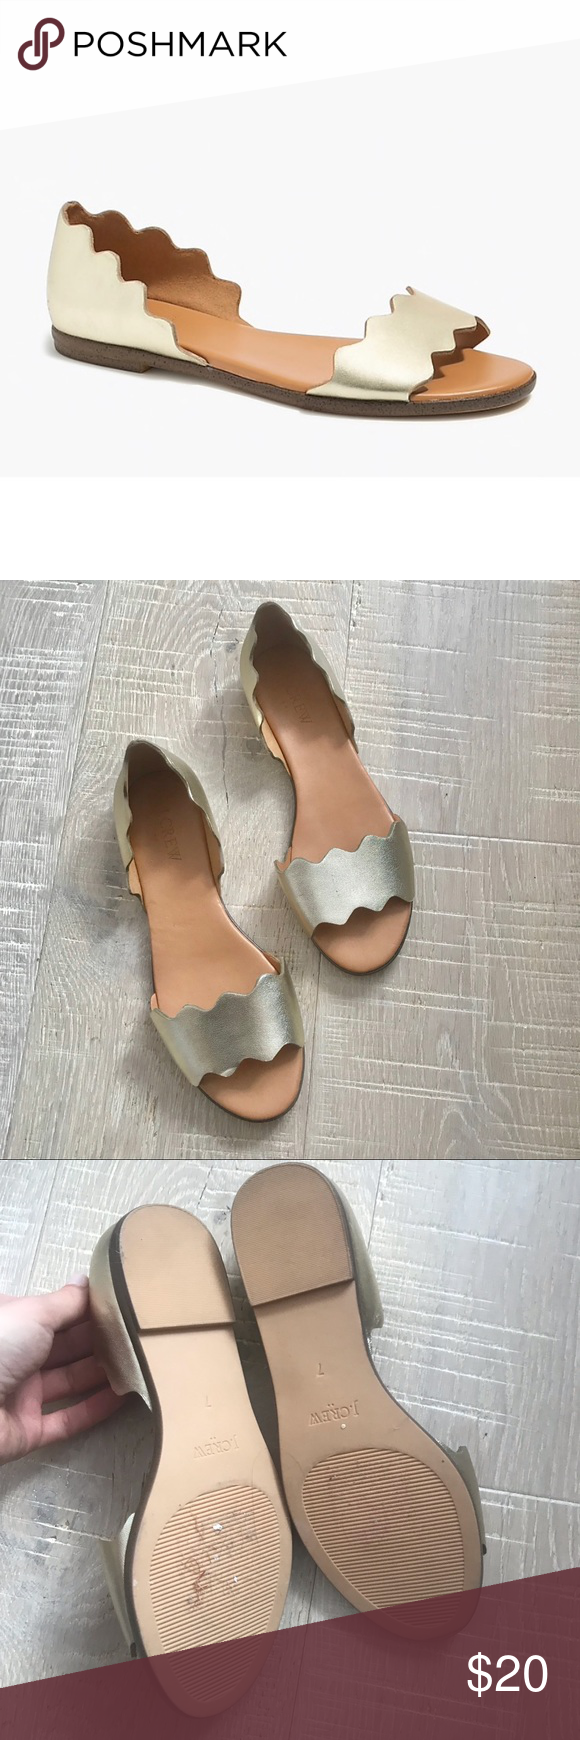 9d1838f0f88 J.Crew Factory Leather scalloped peep-toe flats Brand new without ...